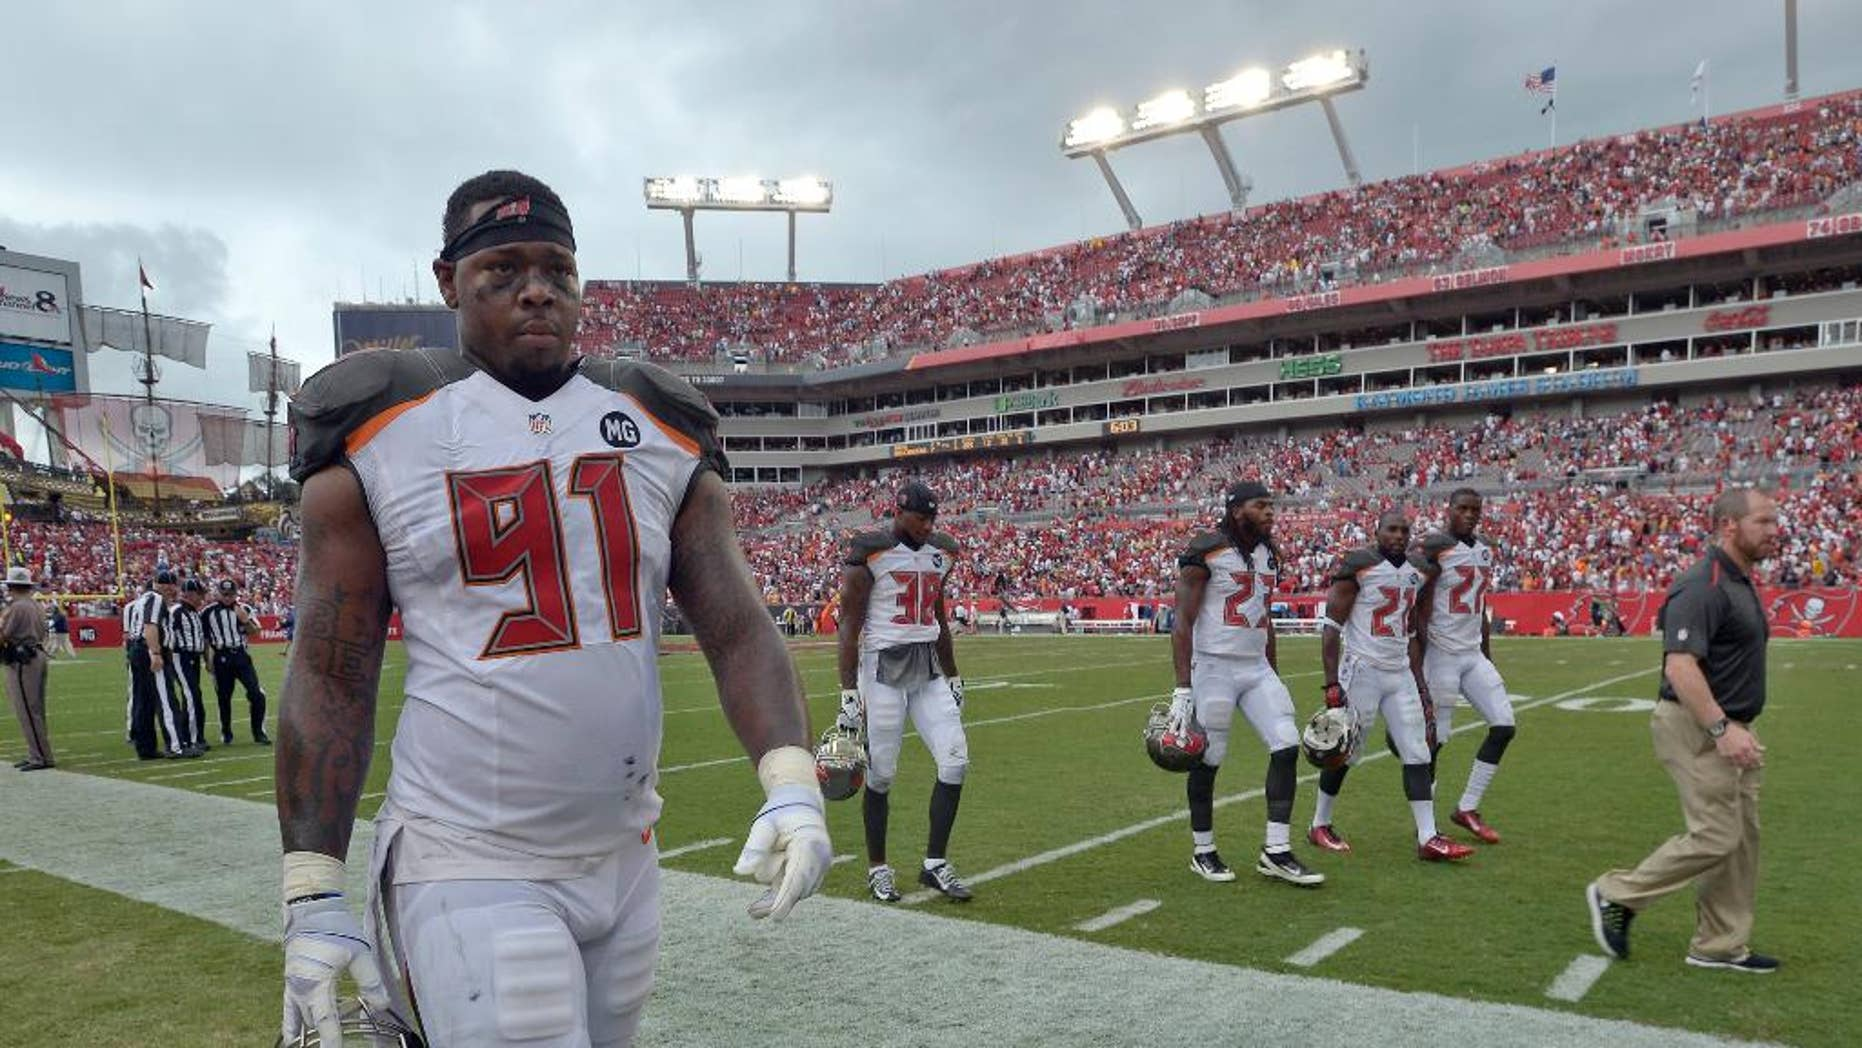 Tampa Bay Buccaneers defensive end Da'Quan Bowers (91) and leave the field during a weather warning in the second quarter of an NFL football game against the St. Louis Rams, Sunday, Sept. 14, 2014, in Tampa, Fla. (AP Photo/Phelan M. Ebenhack)